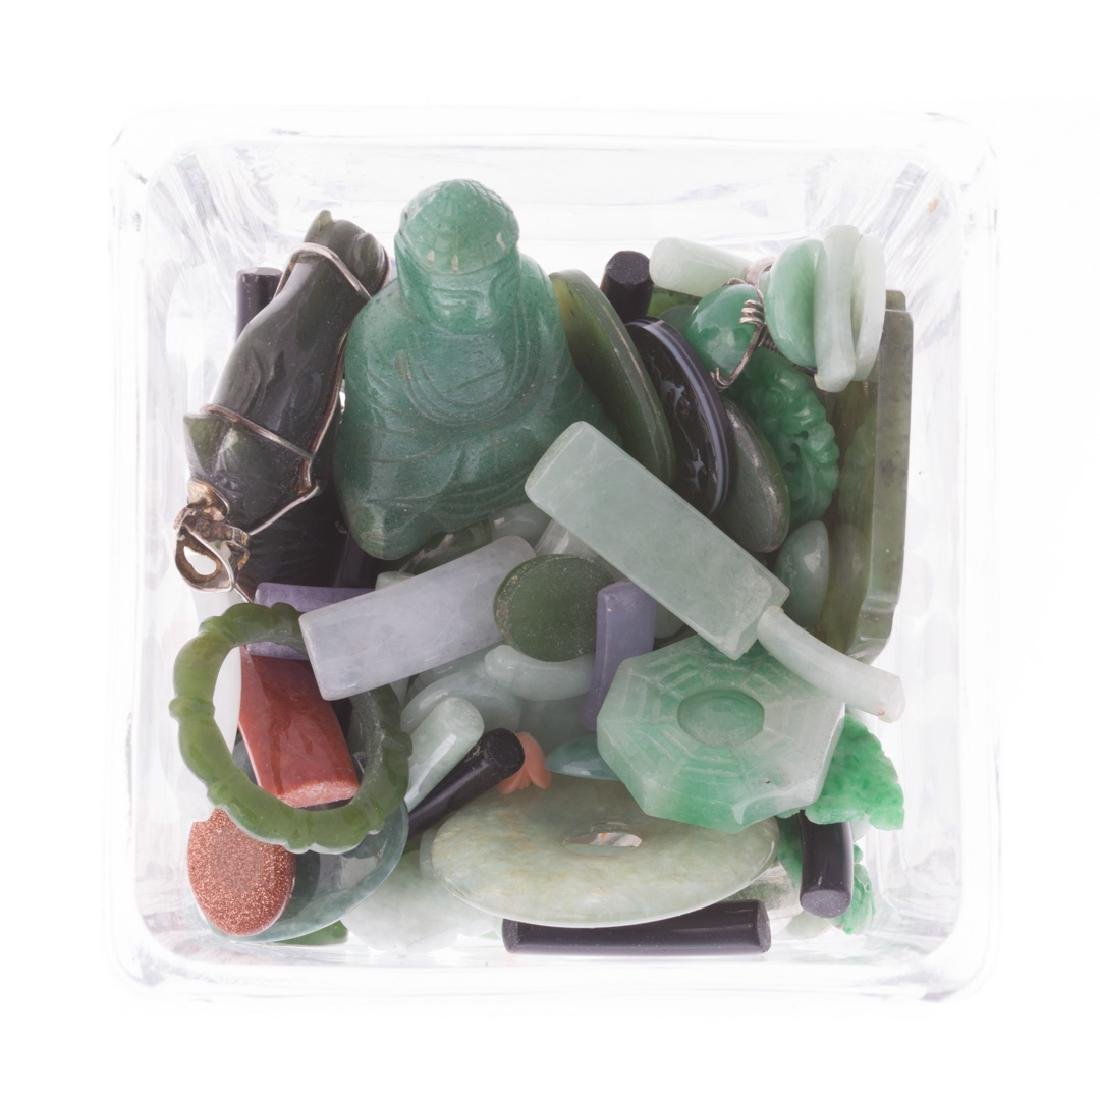 A Bag of Loose Jade and Nephrite